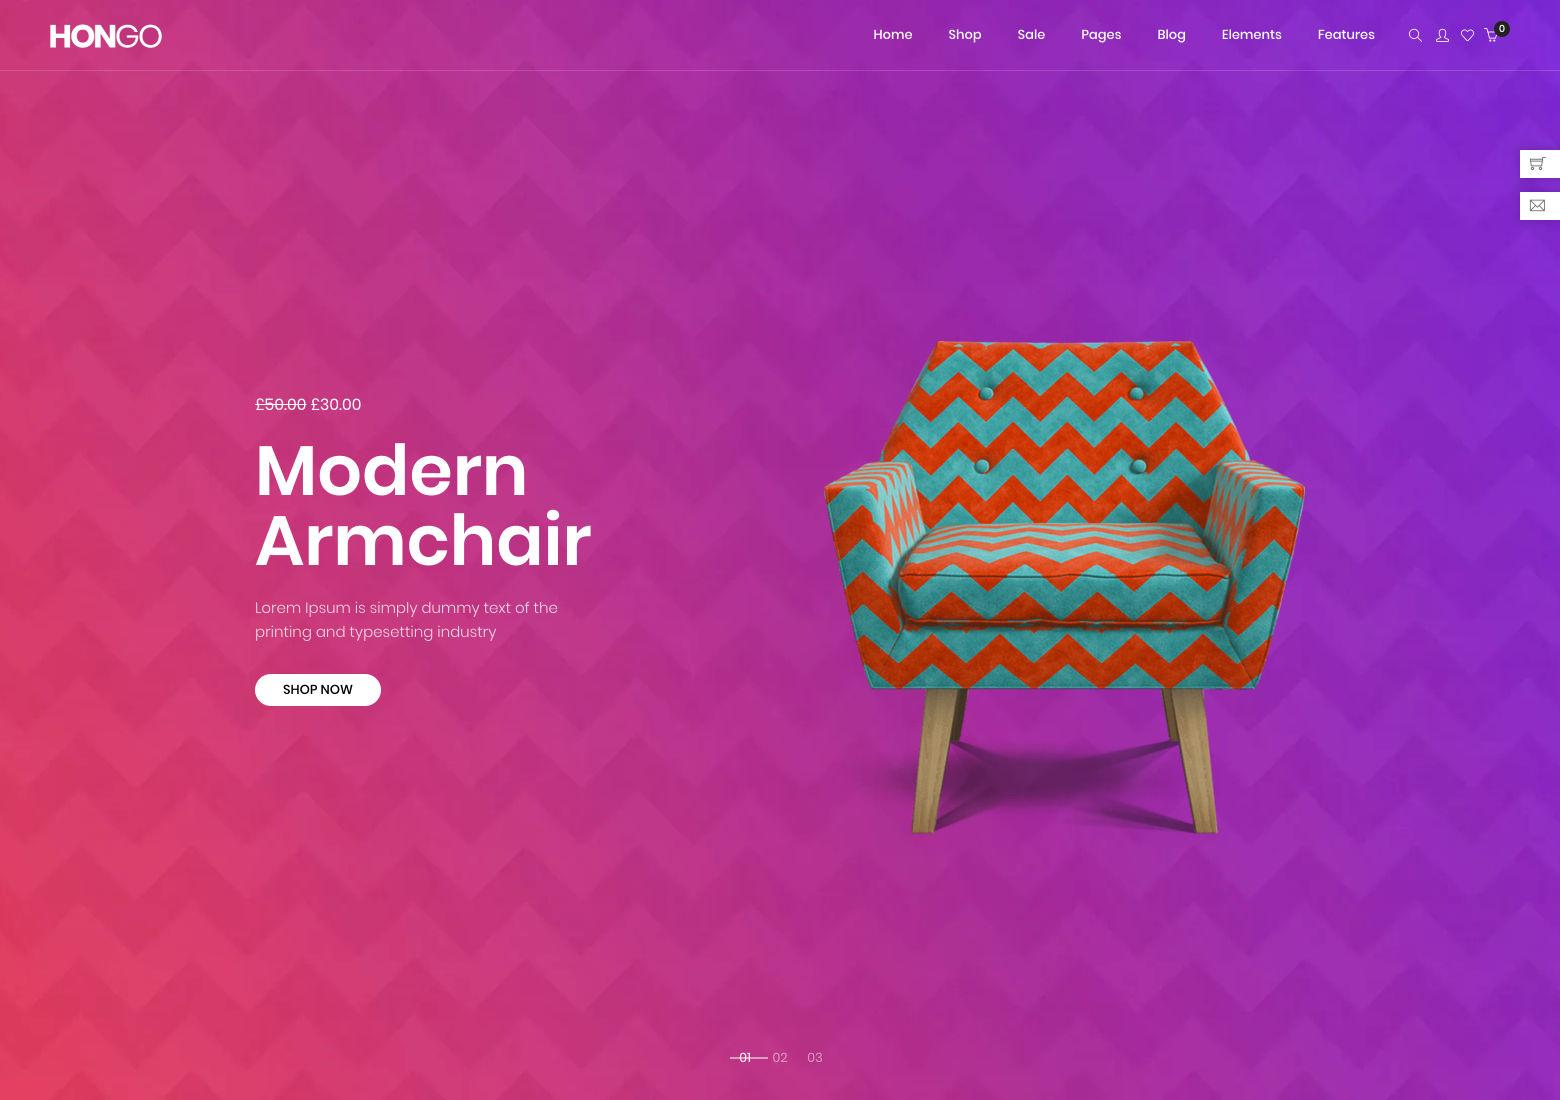 Web design and layout: carousels for featured content